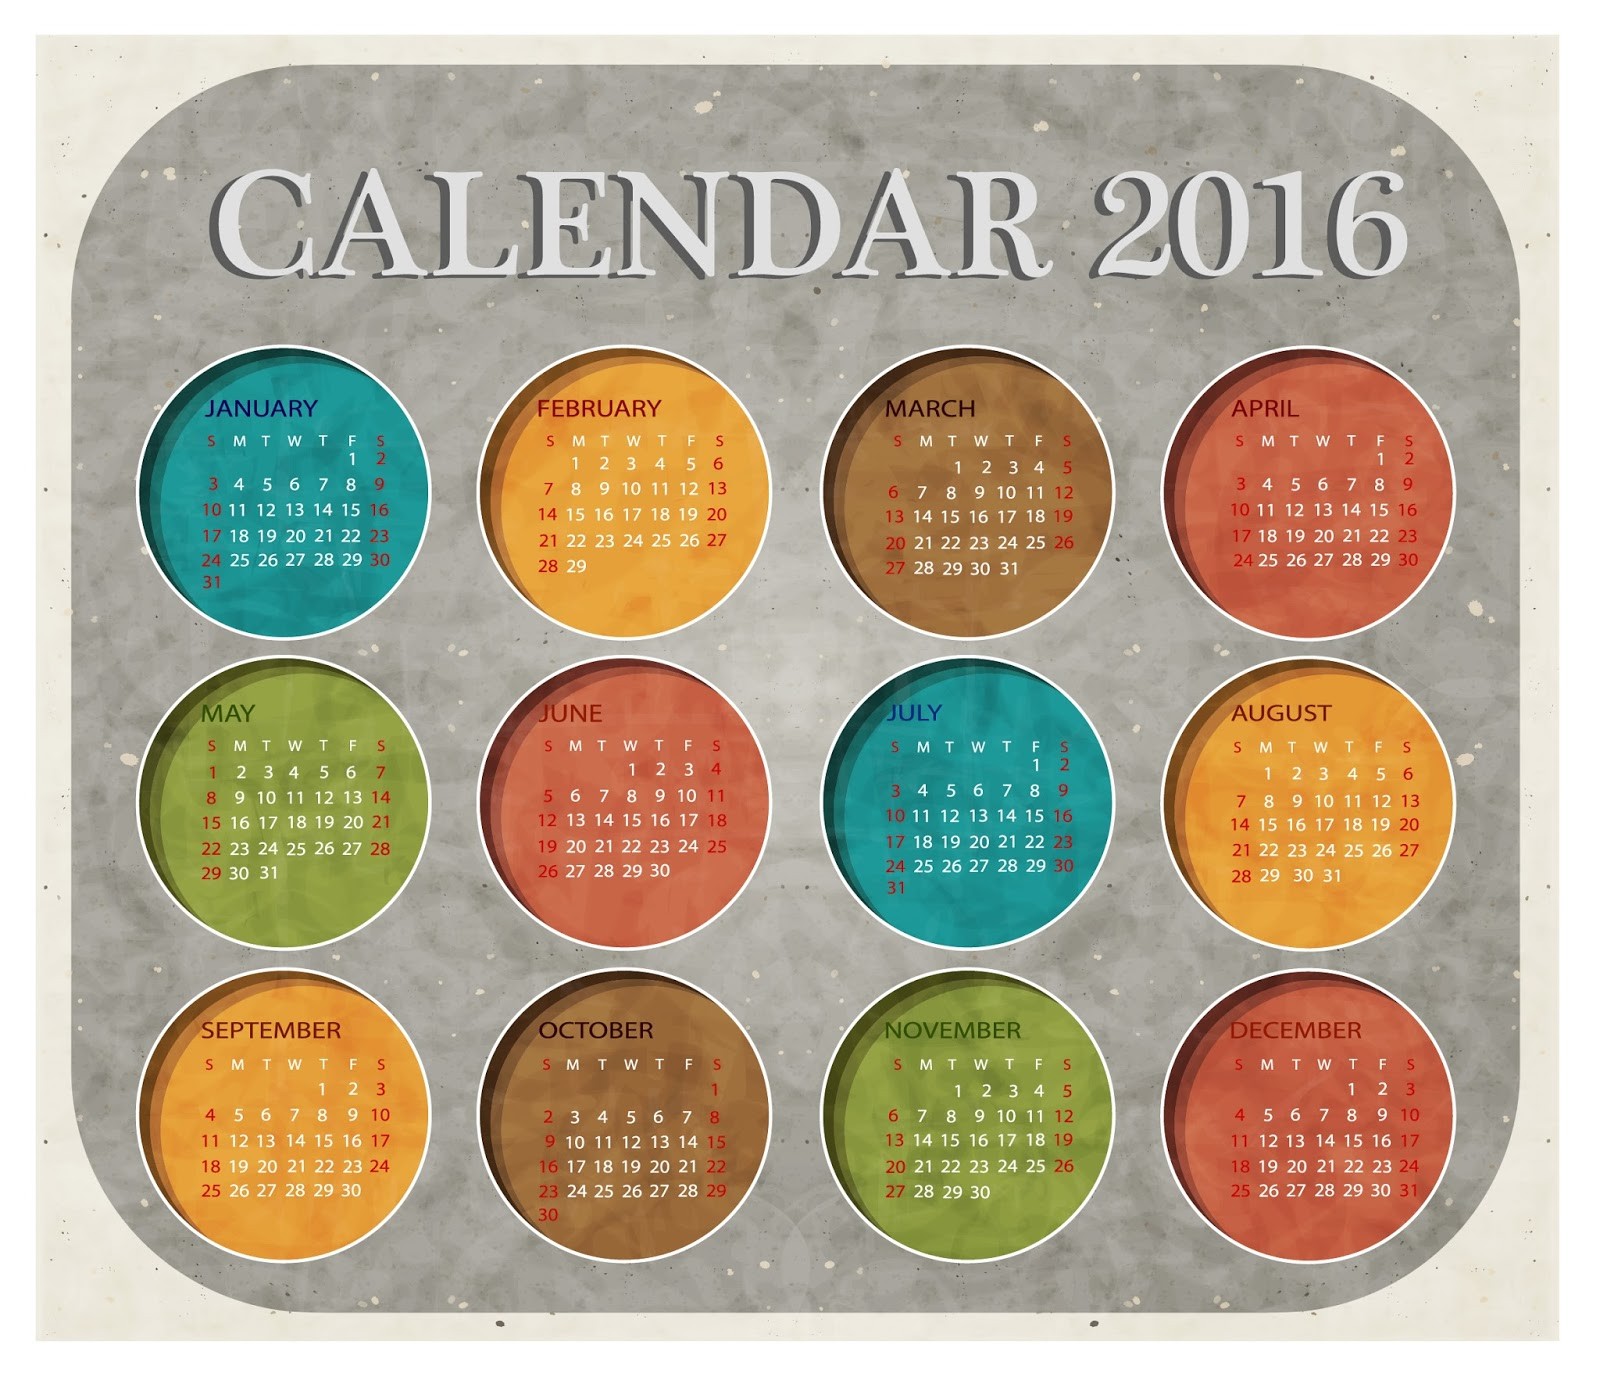 calendar 2016 design a calendar for 2016 calendar 2016 printable the 2016 calendar year the calendar for 2016 the 2016 calendar year non monthly calendar 2016 4 month